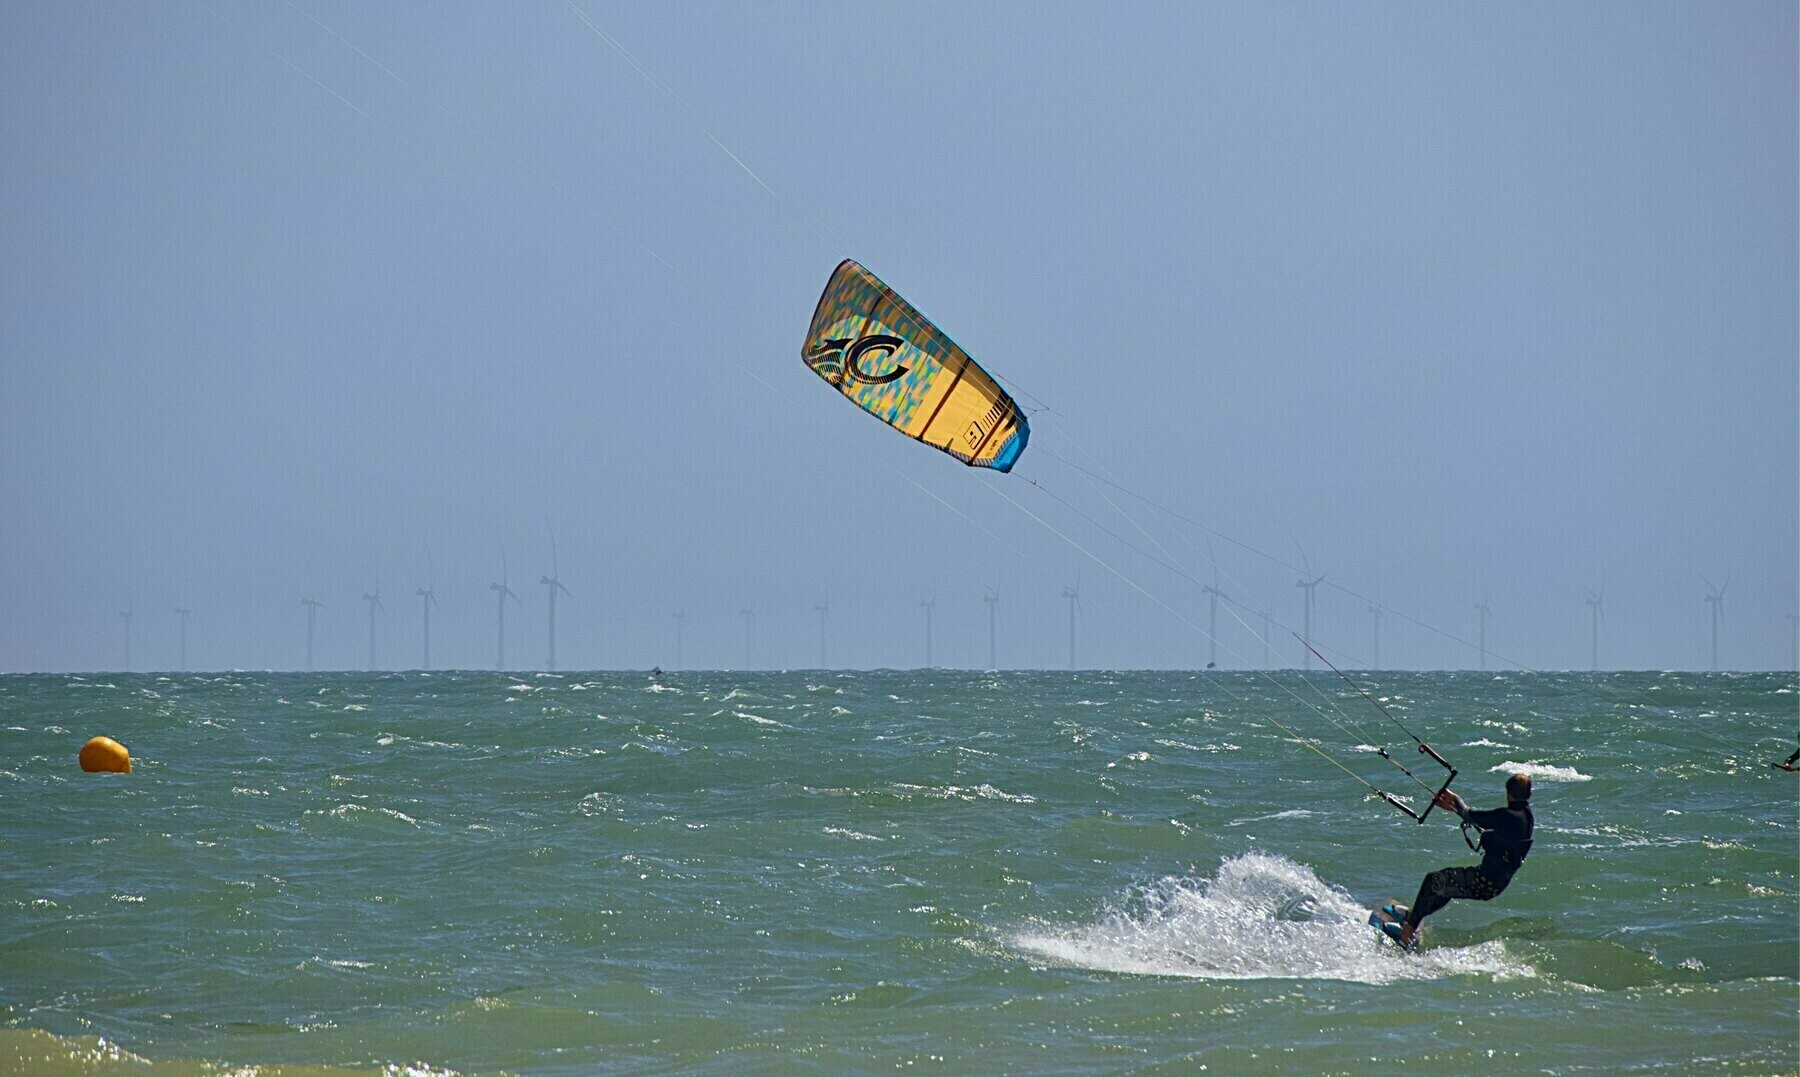 Kite surfers off Shoreham Beach